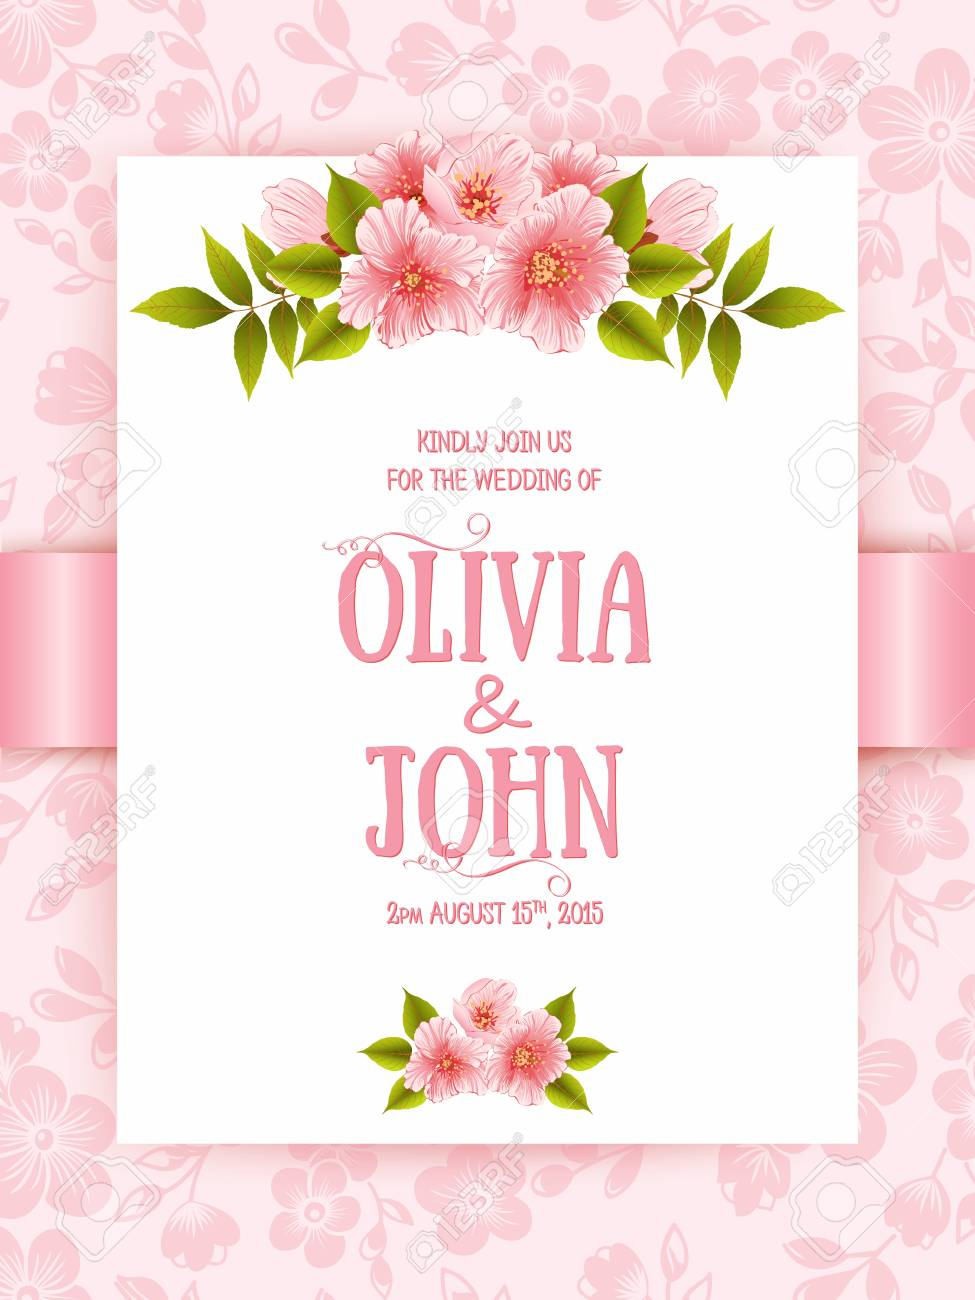 Wedding invitation card vector invitation card with floral vector wedding invitation card vector invitation card with floral background and elegant frame with text decorated with flower composition stopboris Gallery